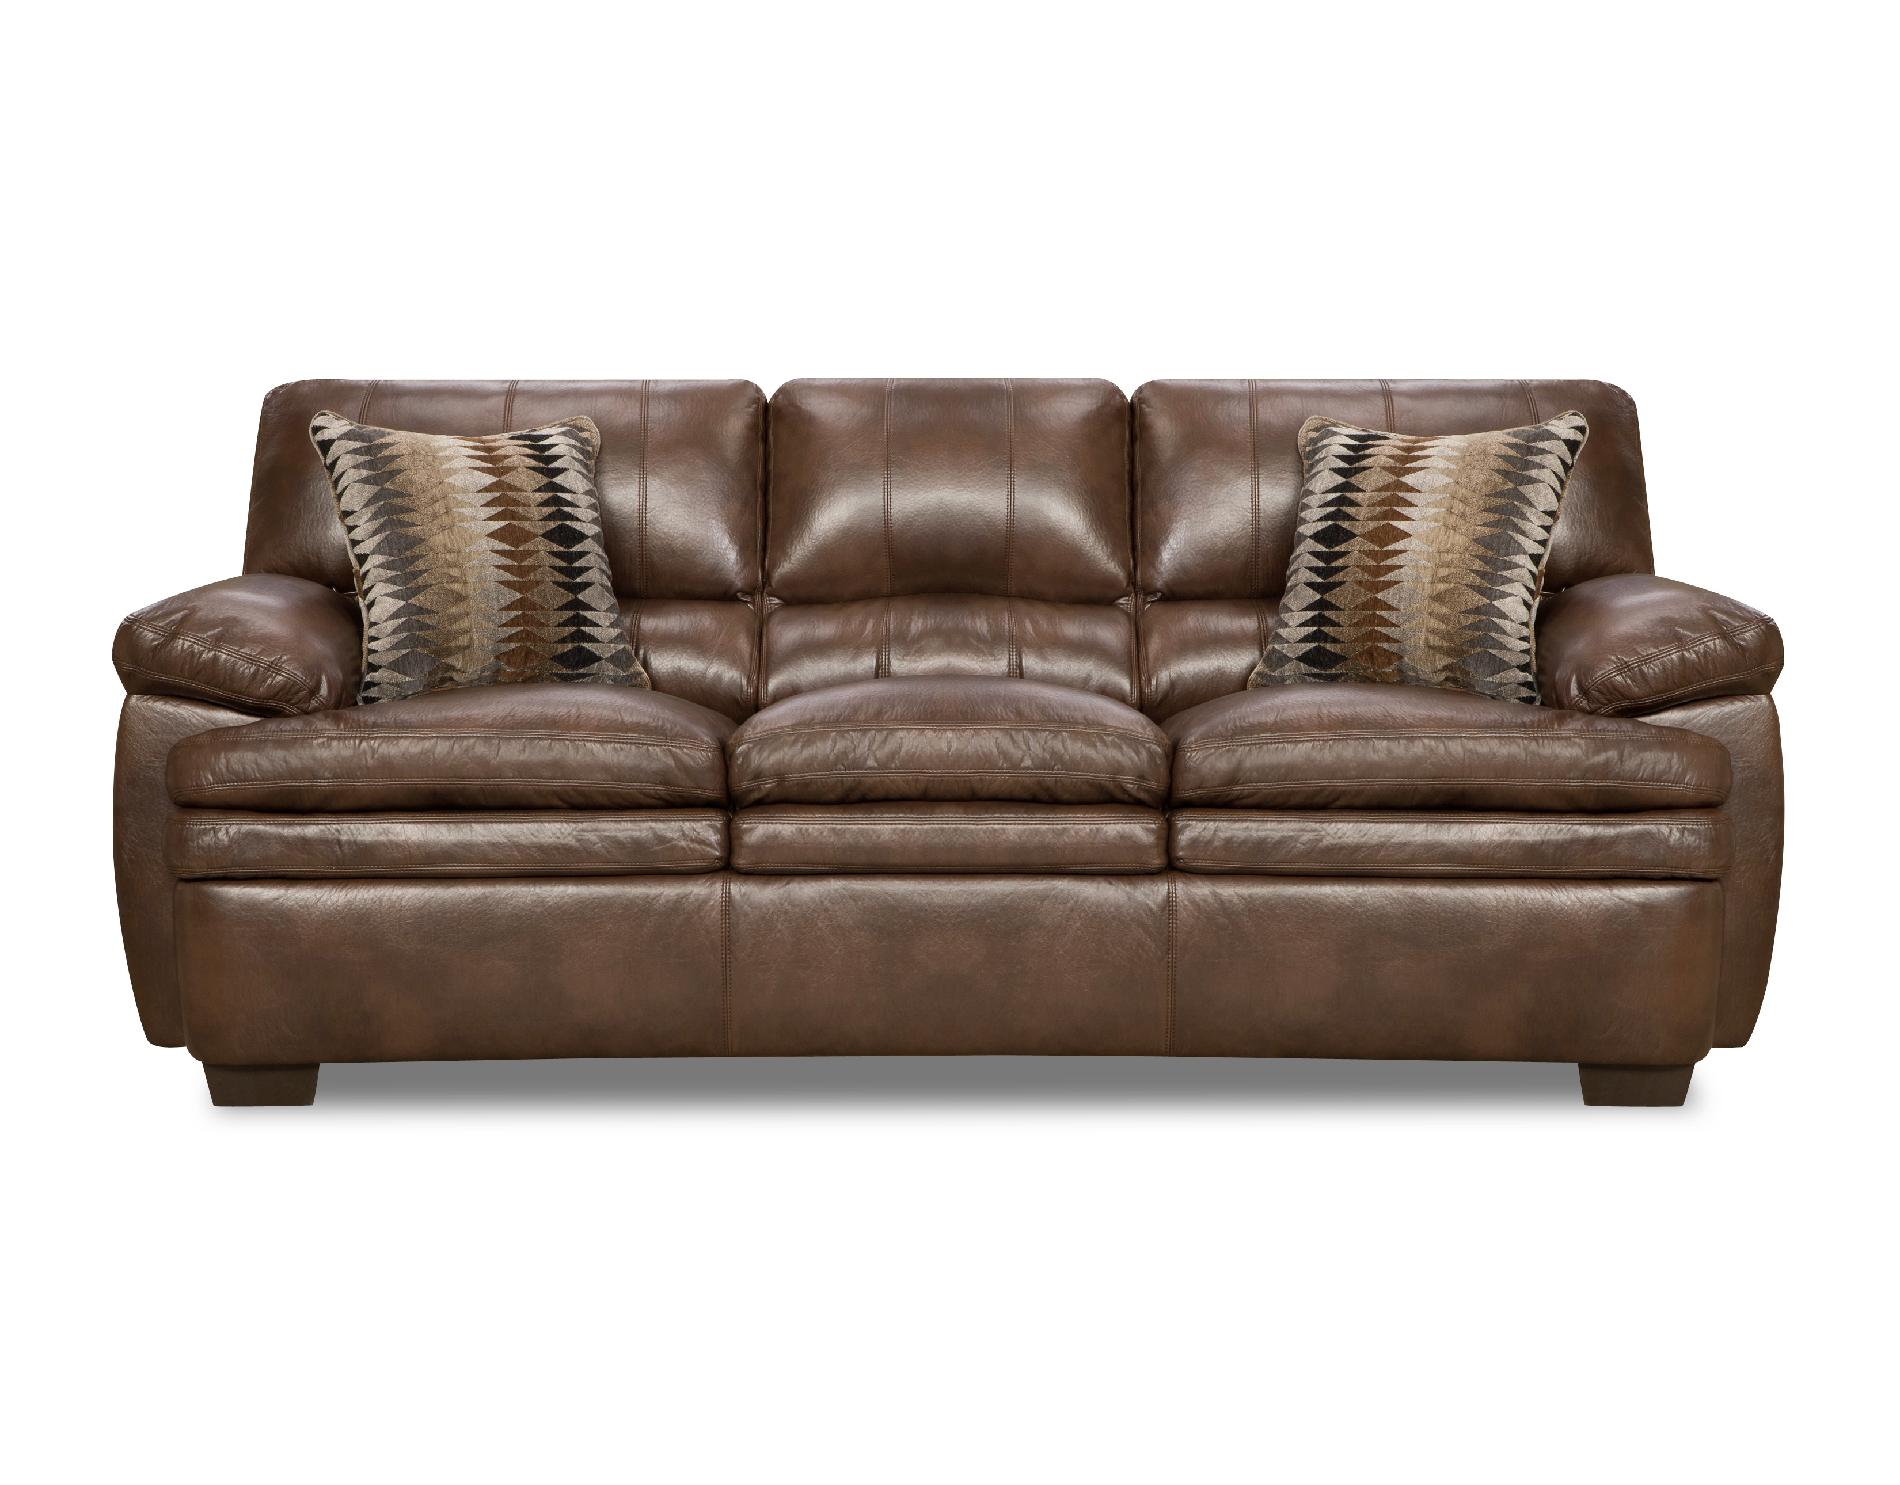 leather sofa bed sears white contemporary set simmons three cushion split back editor arm